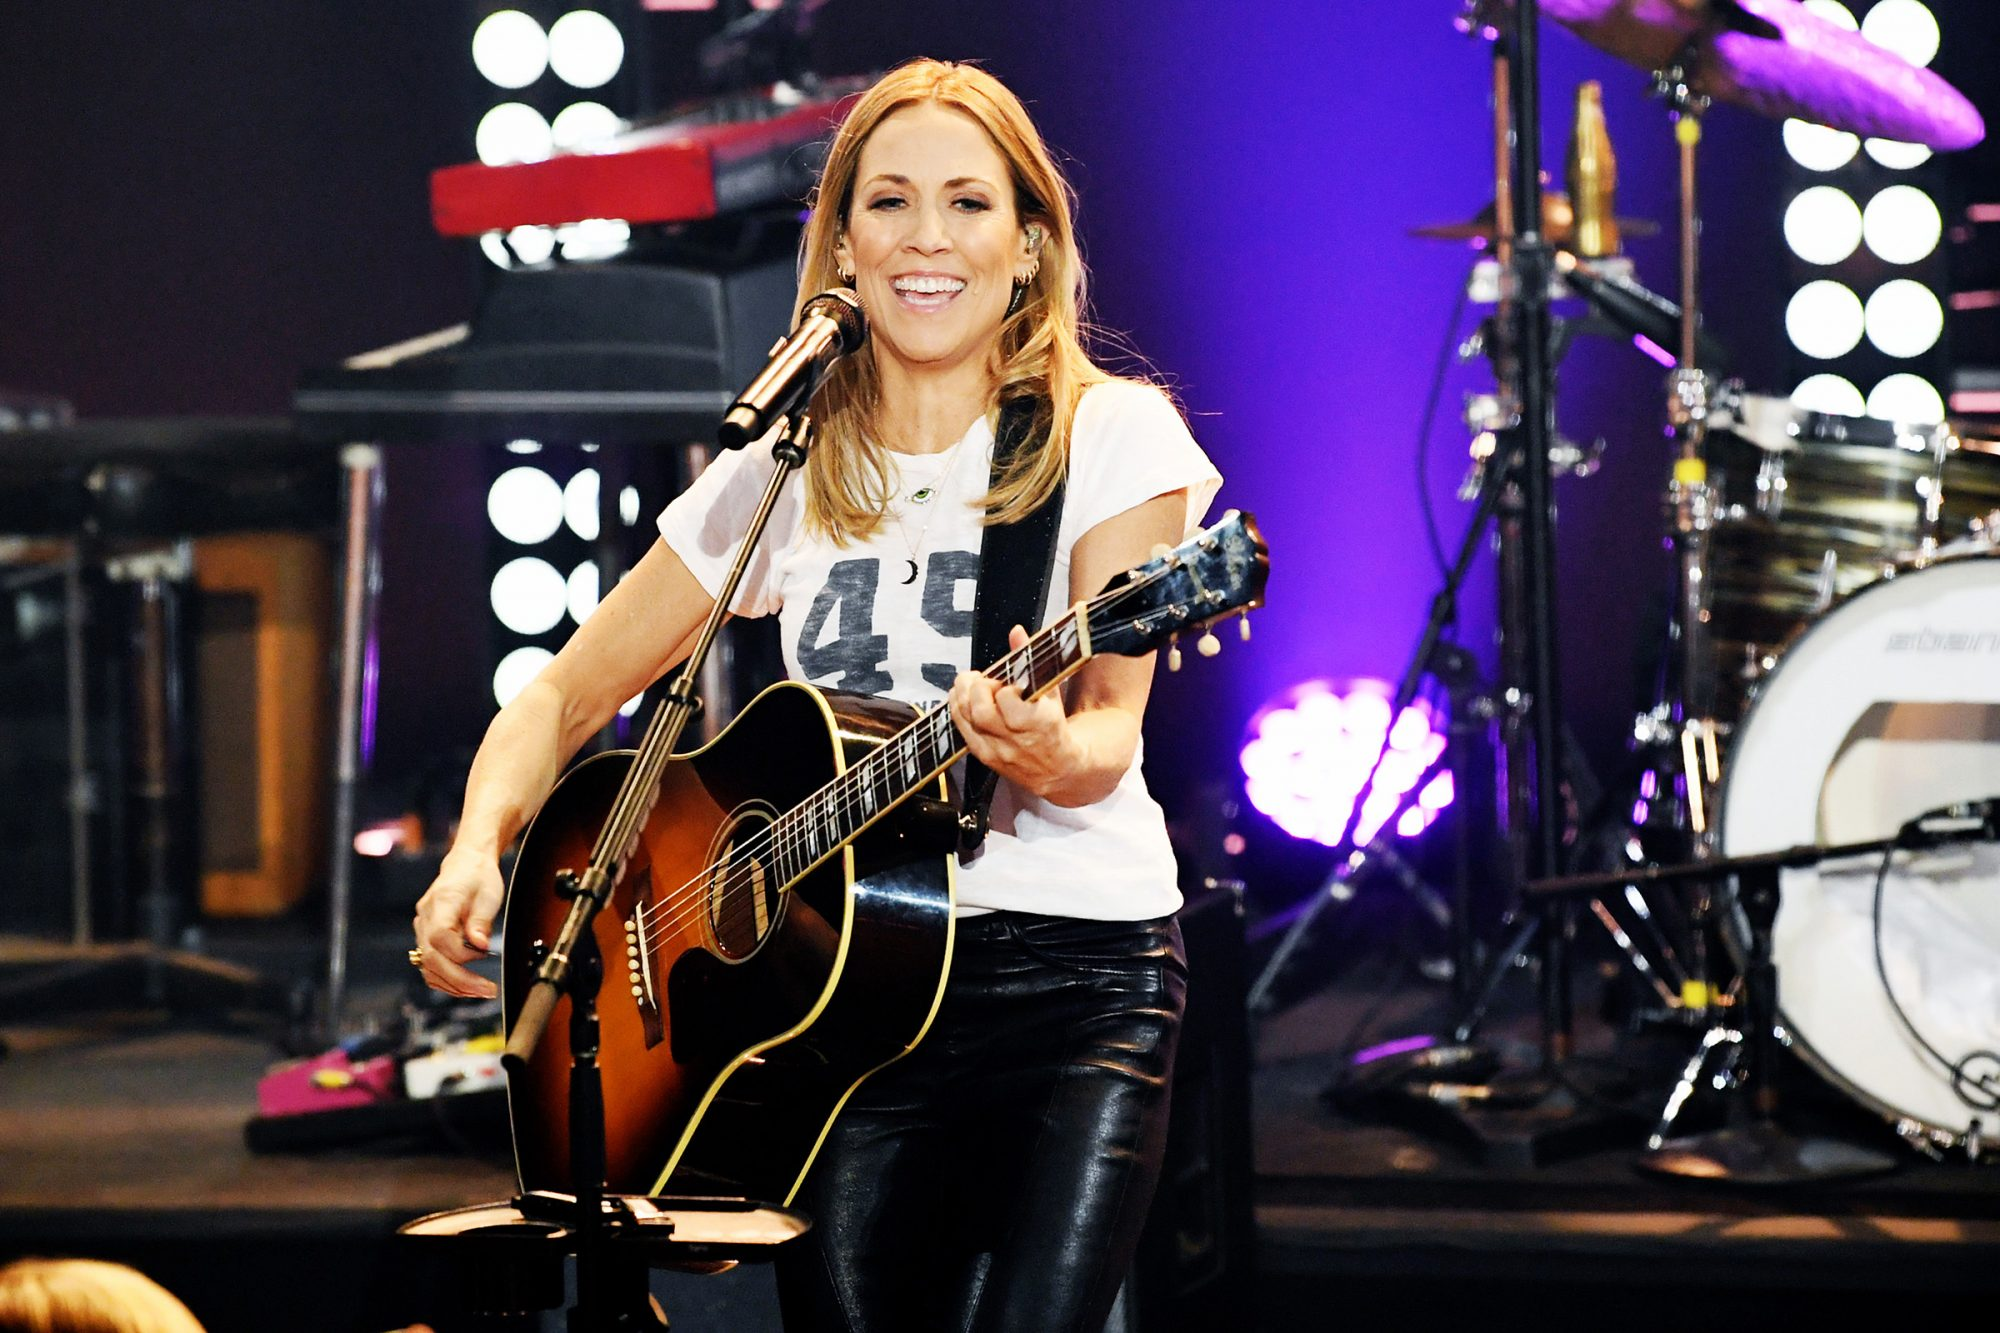 Sheryl Crow performs onstage during iHeartRadio LIVE With Sheryl Crow at iHeartRadio Theater on December 02, 2019 in Burbank, California